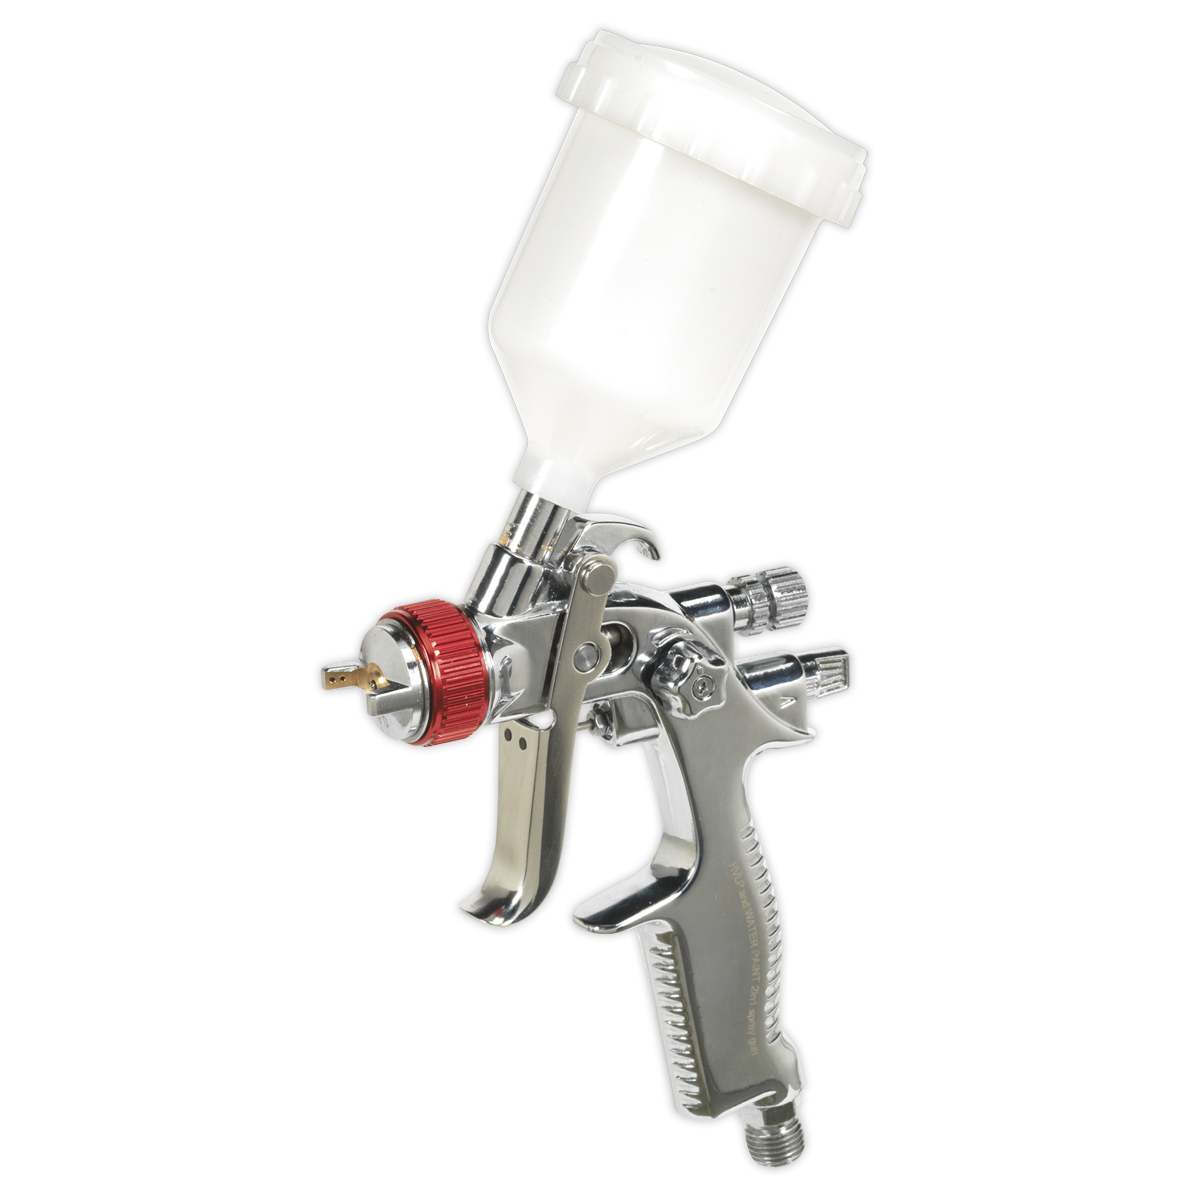 HVLP Gravity Feed Touch-Up Spray Gun 0.8mm Set-Up